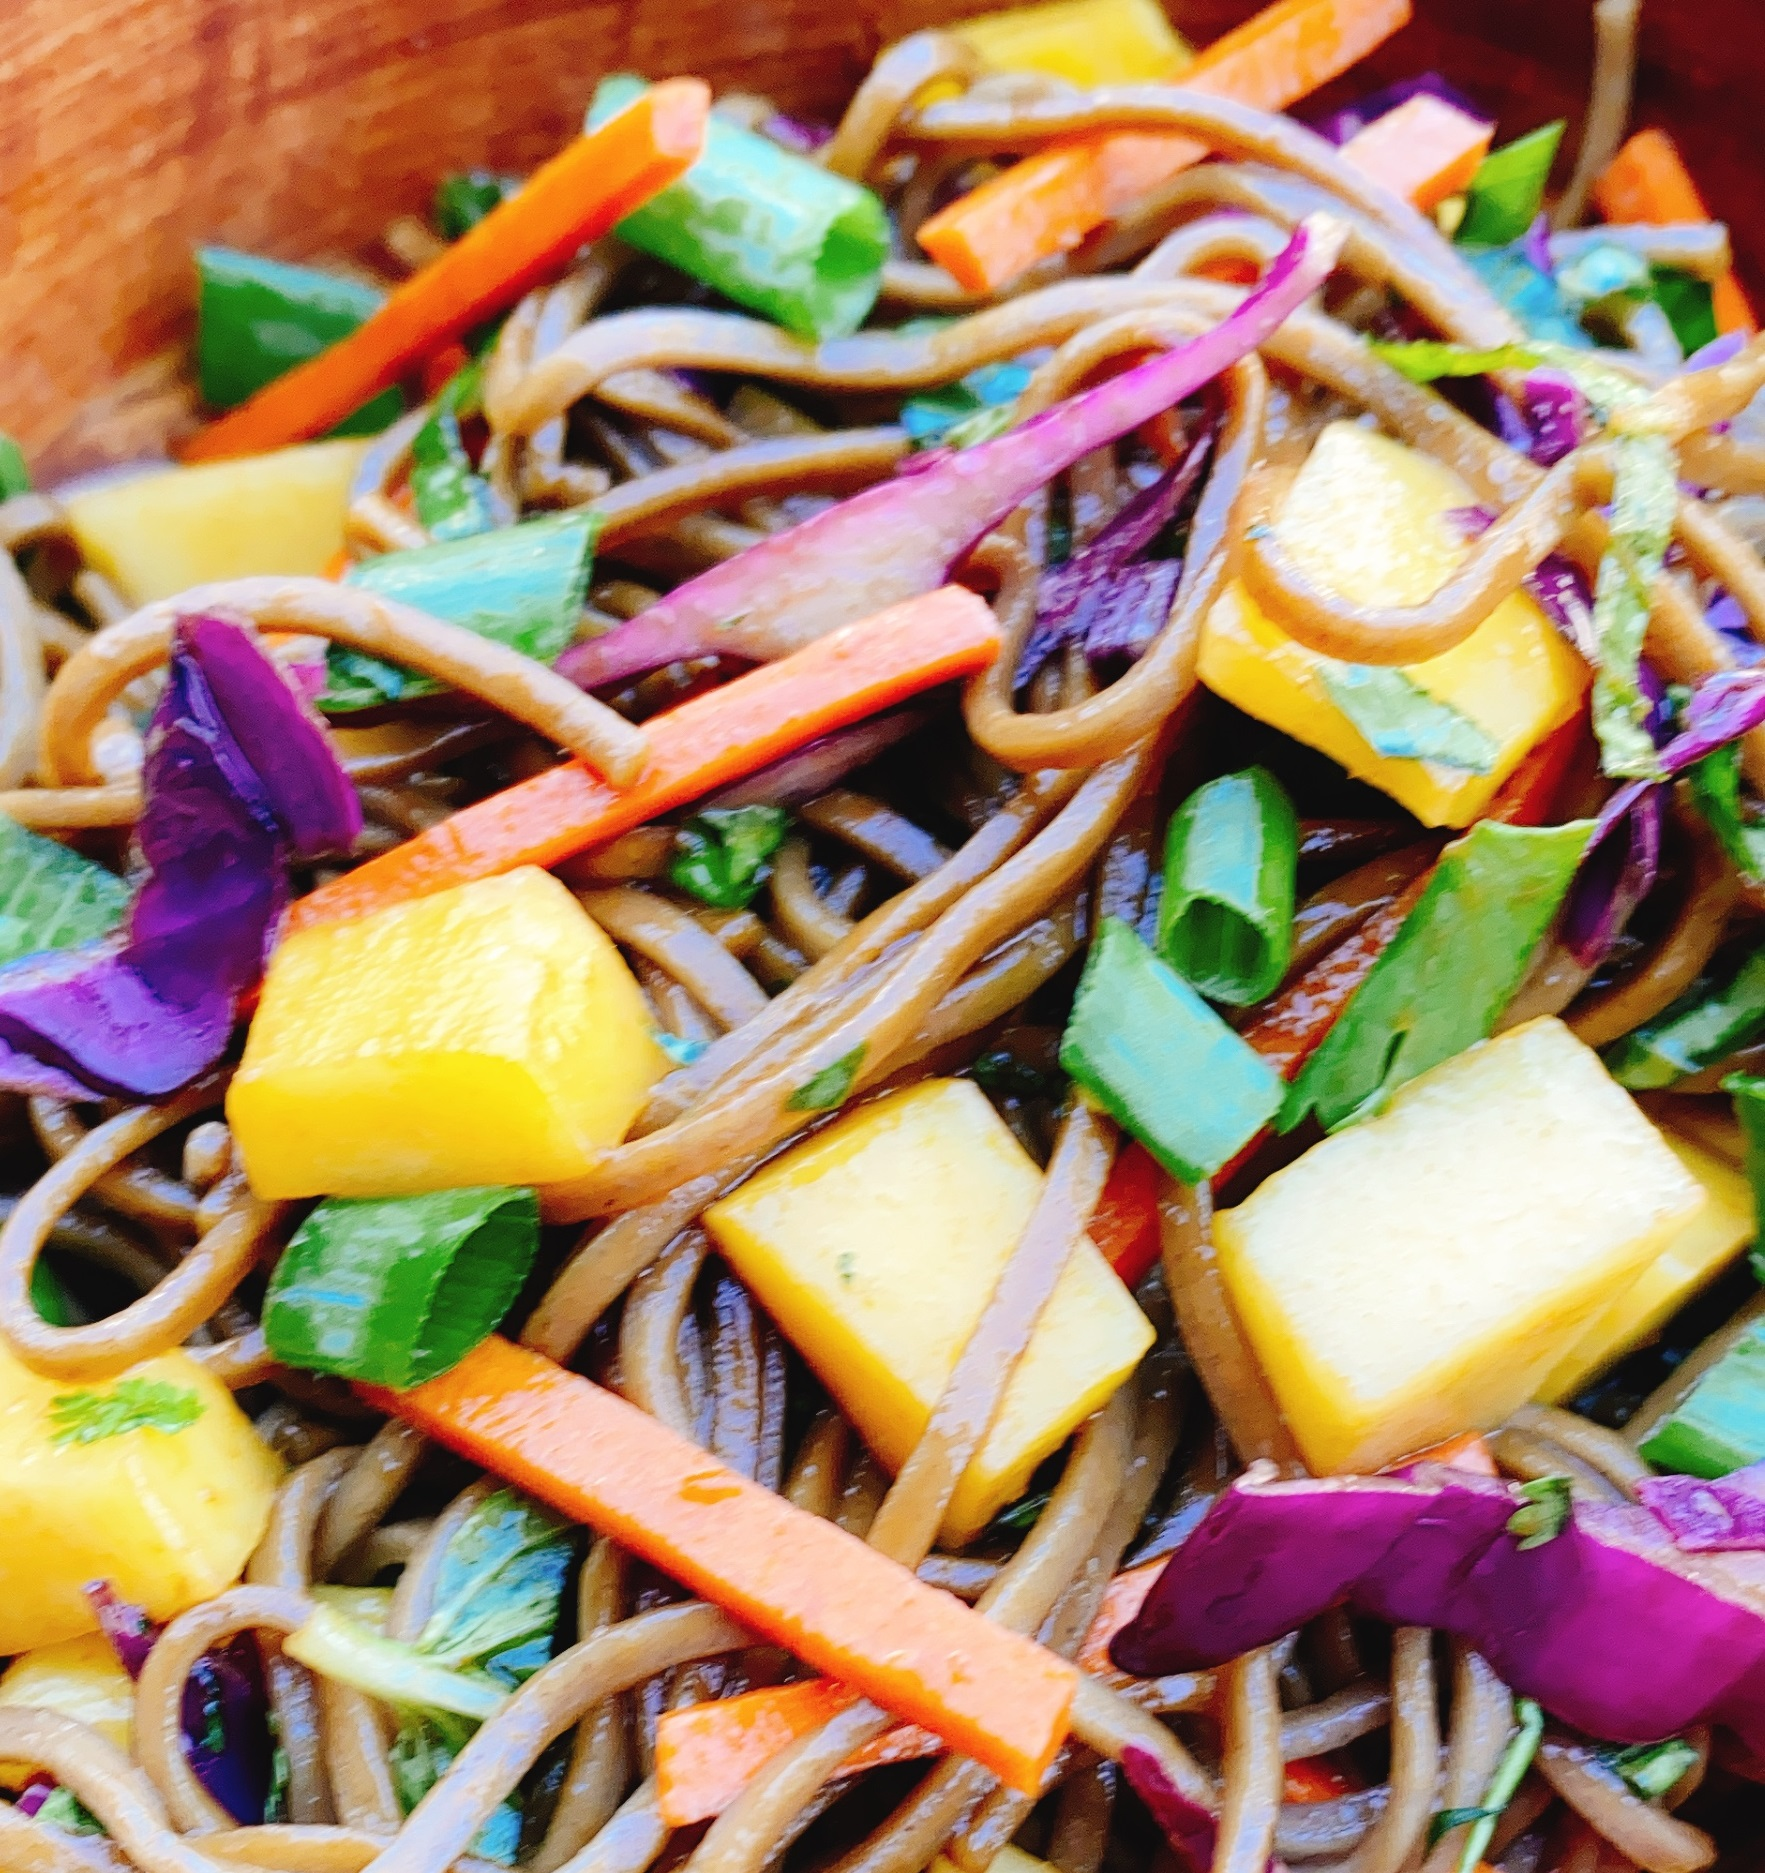 Cold Soba Noodles with Herbs and Mango